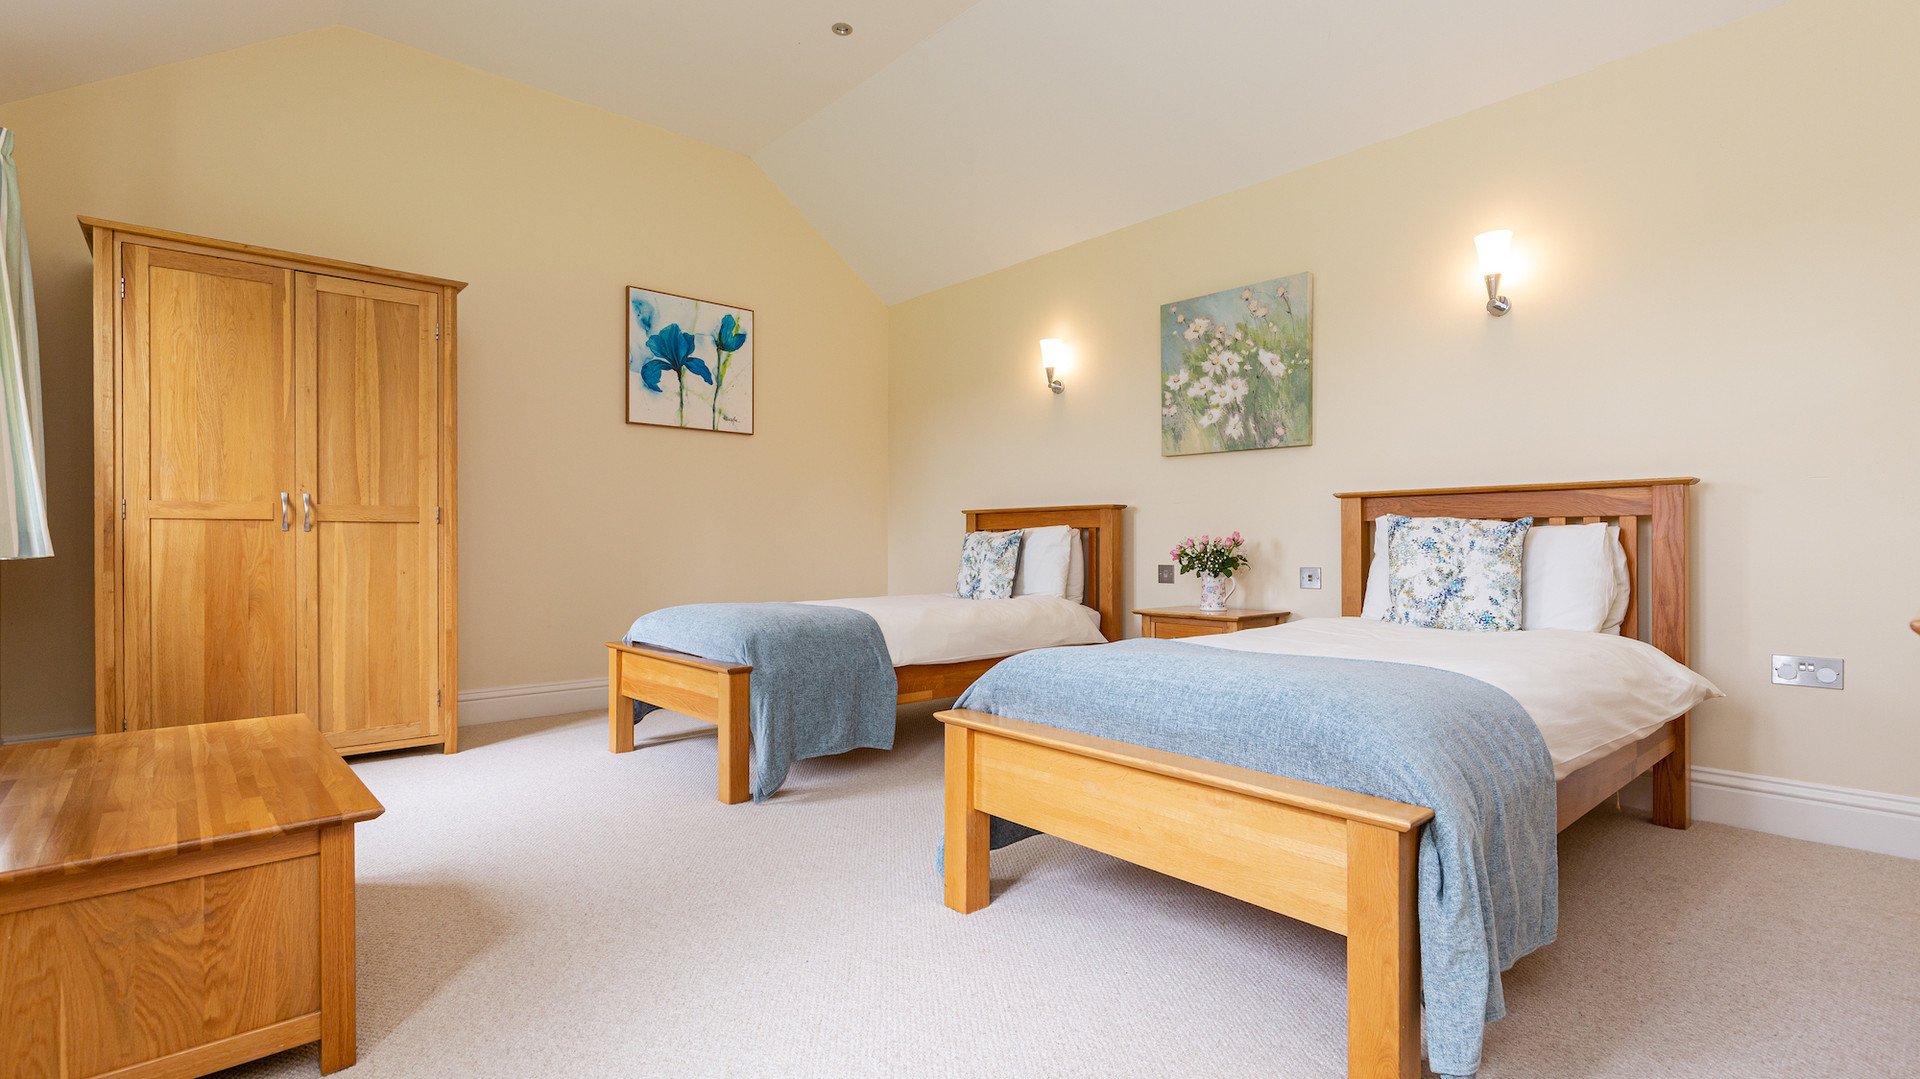 interior property photography bude Cornwall